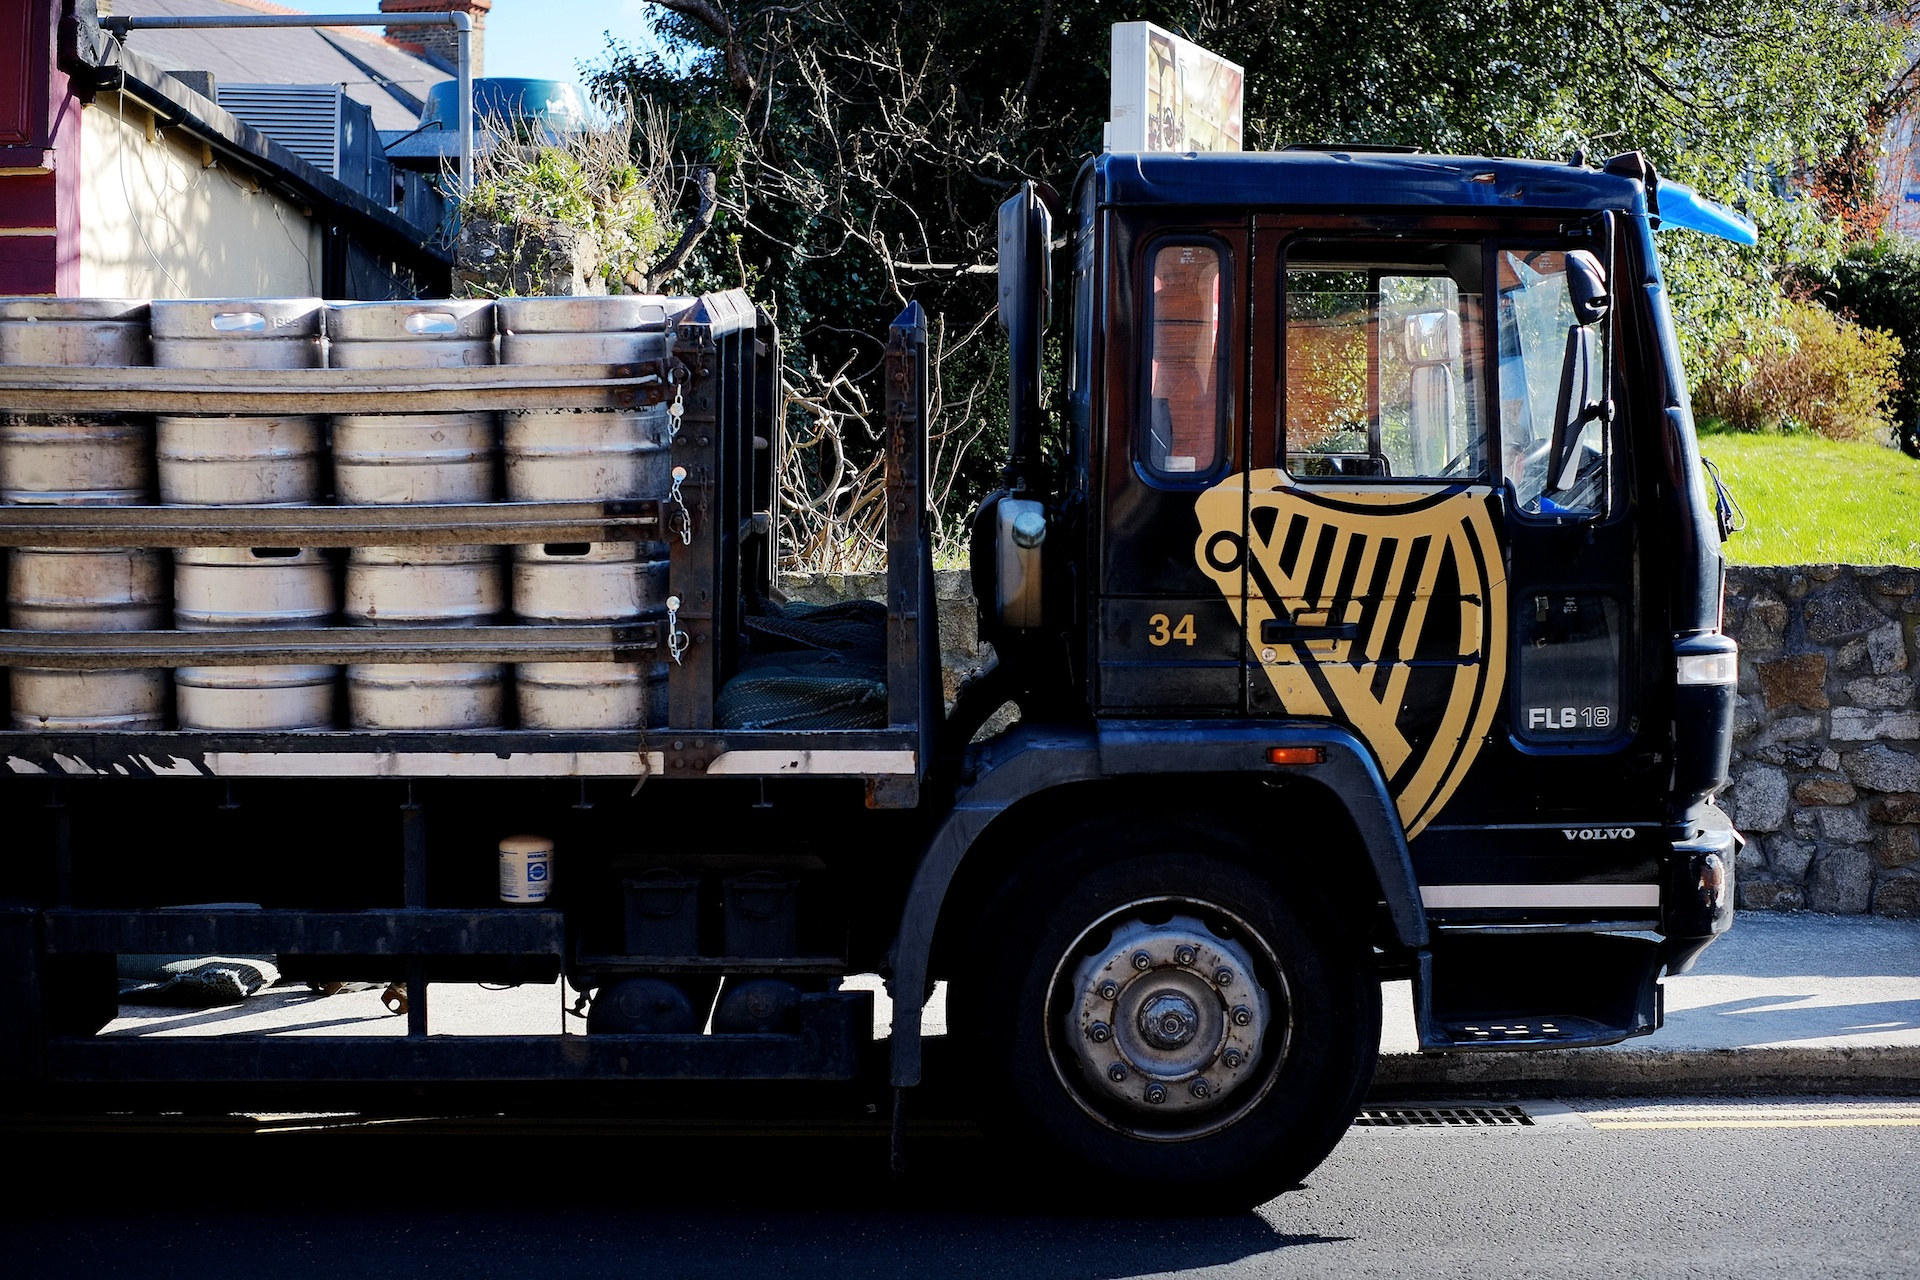 Guinness Truck with kegs on board